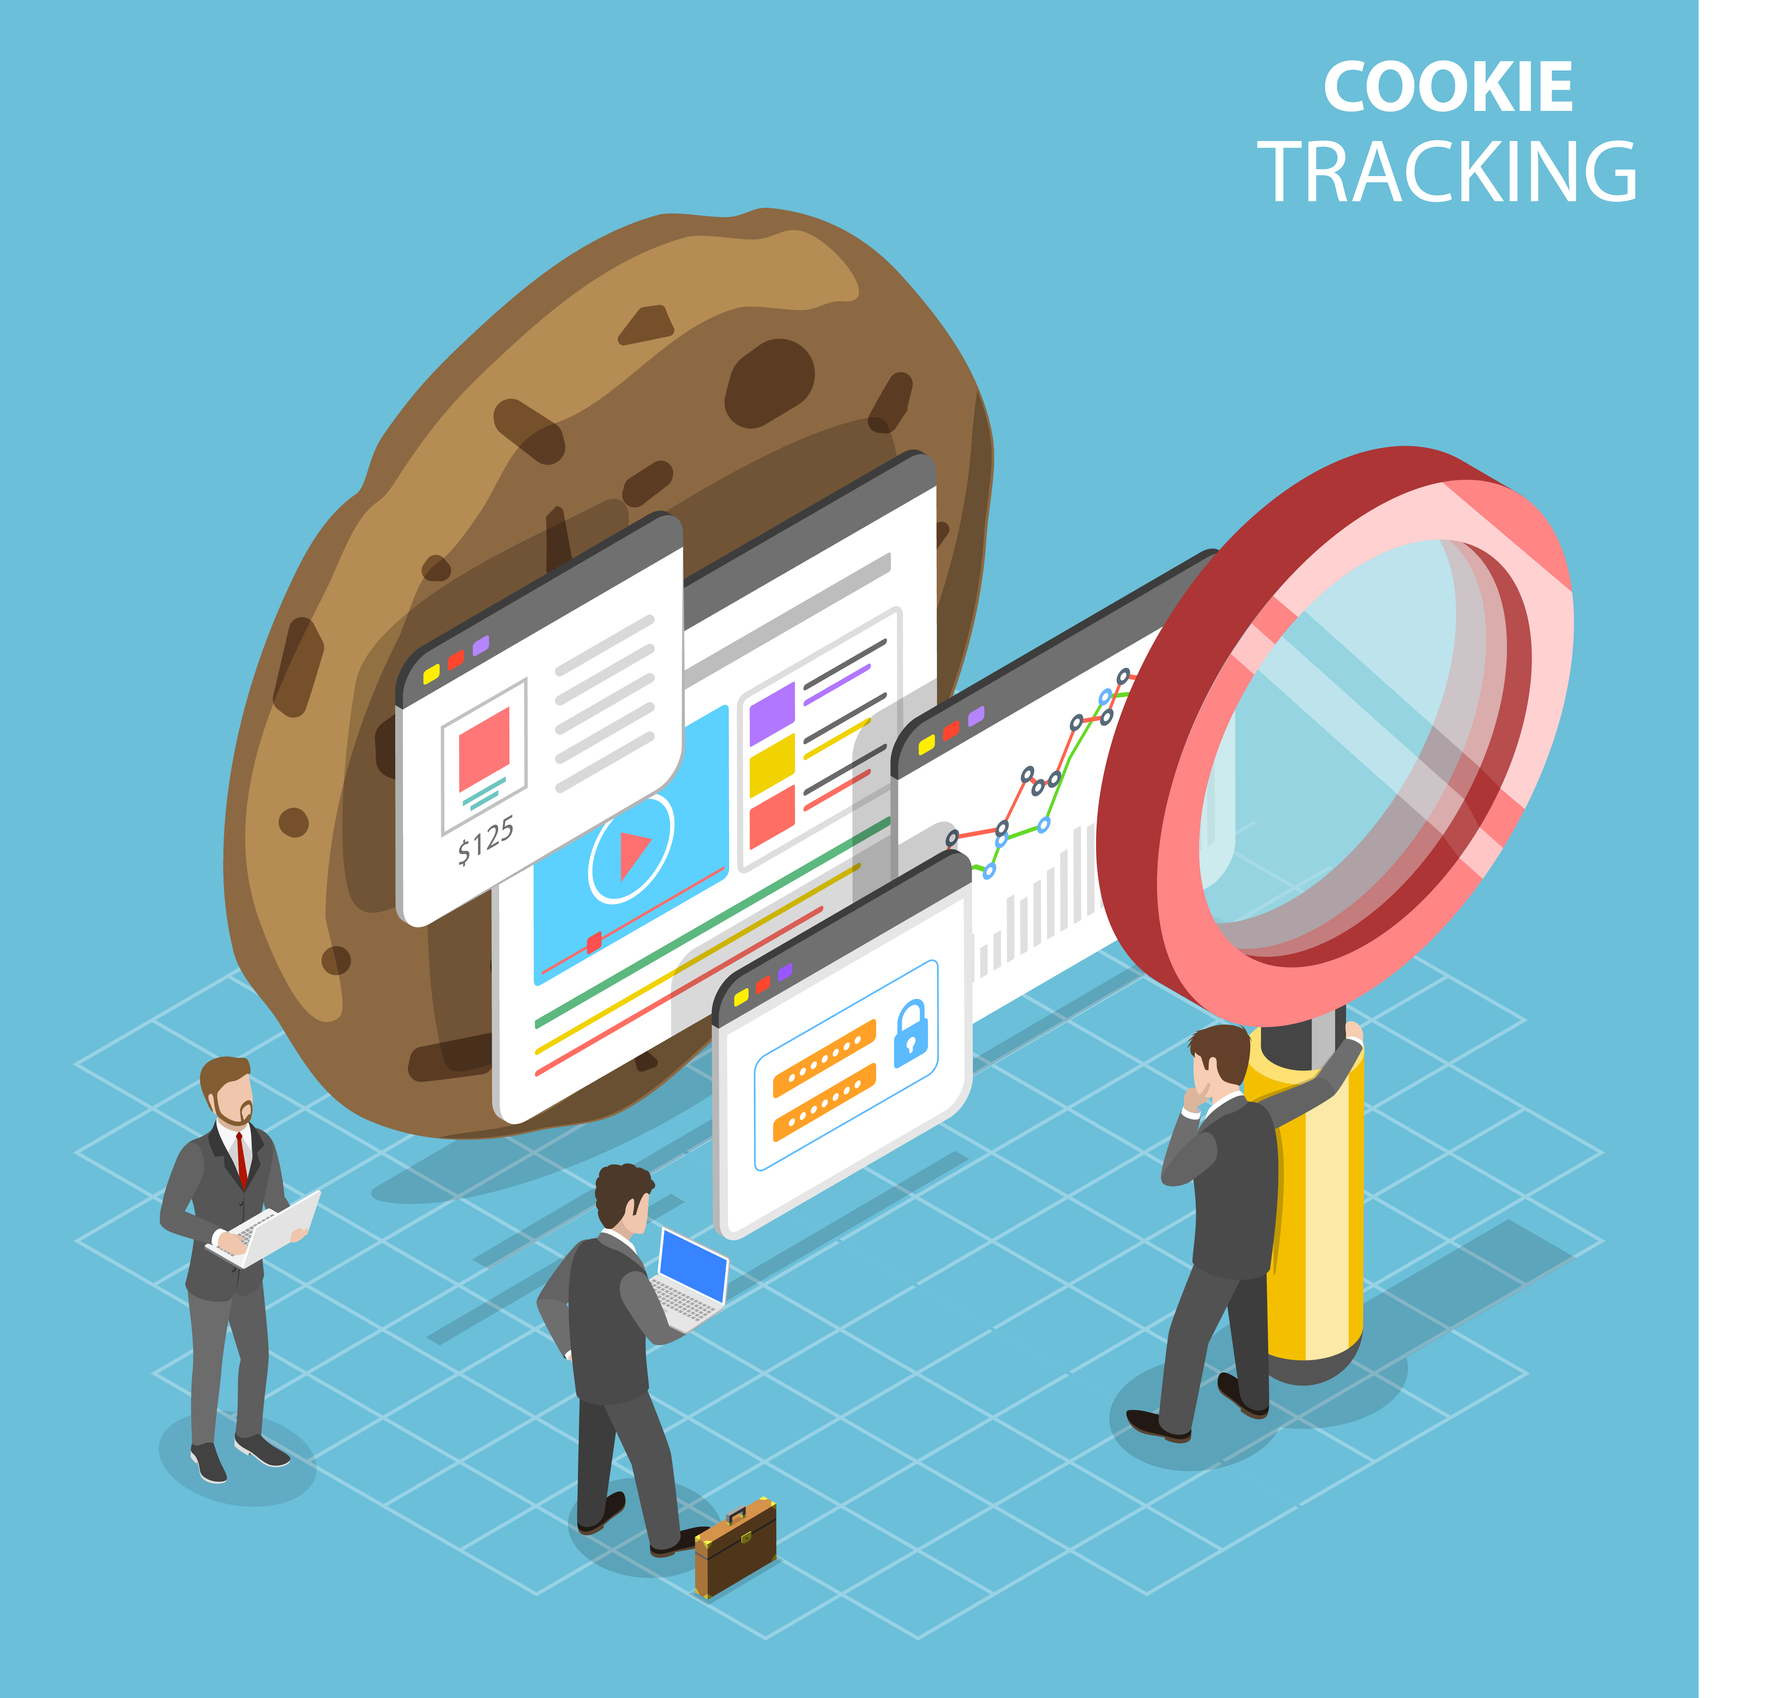 Advertising Cookie